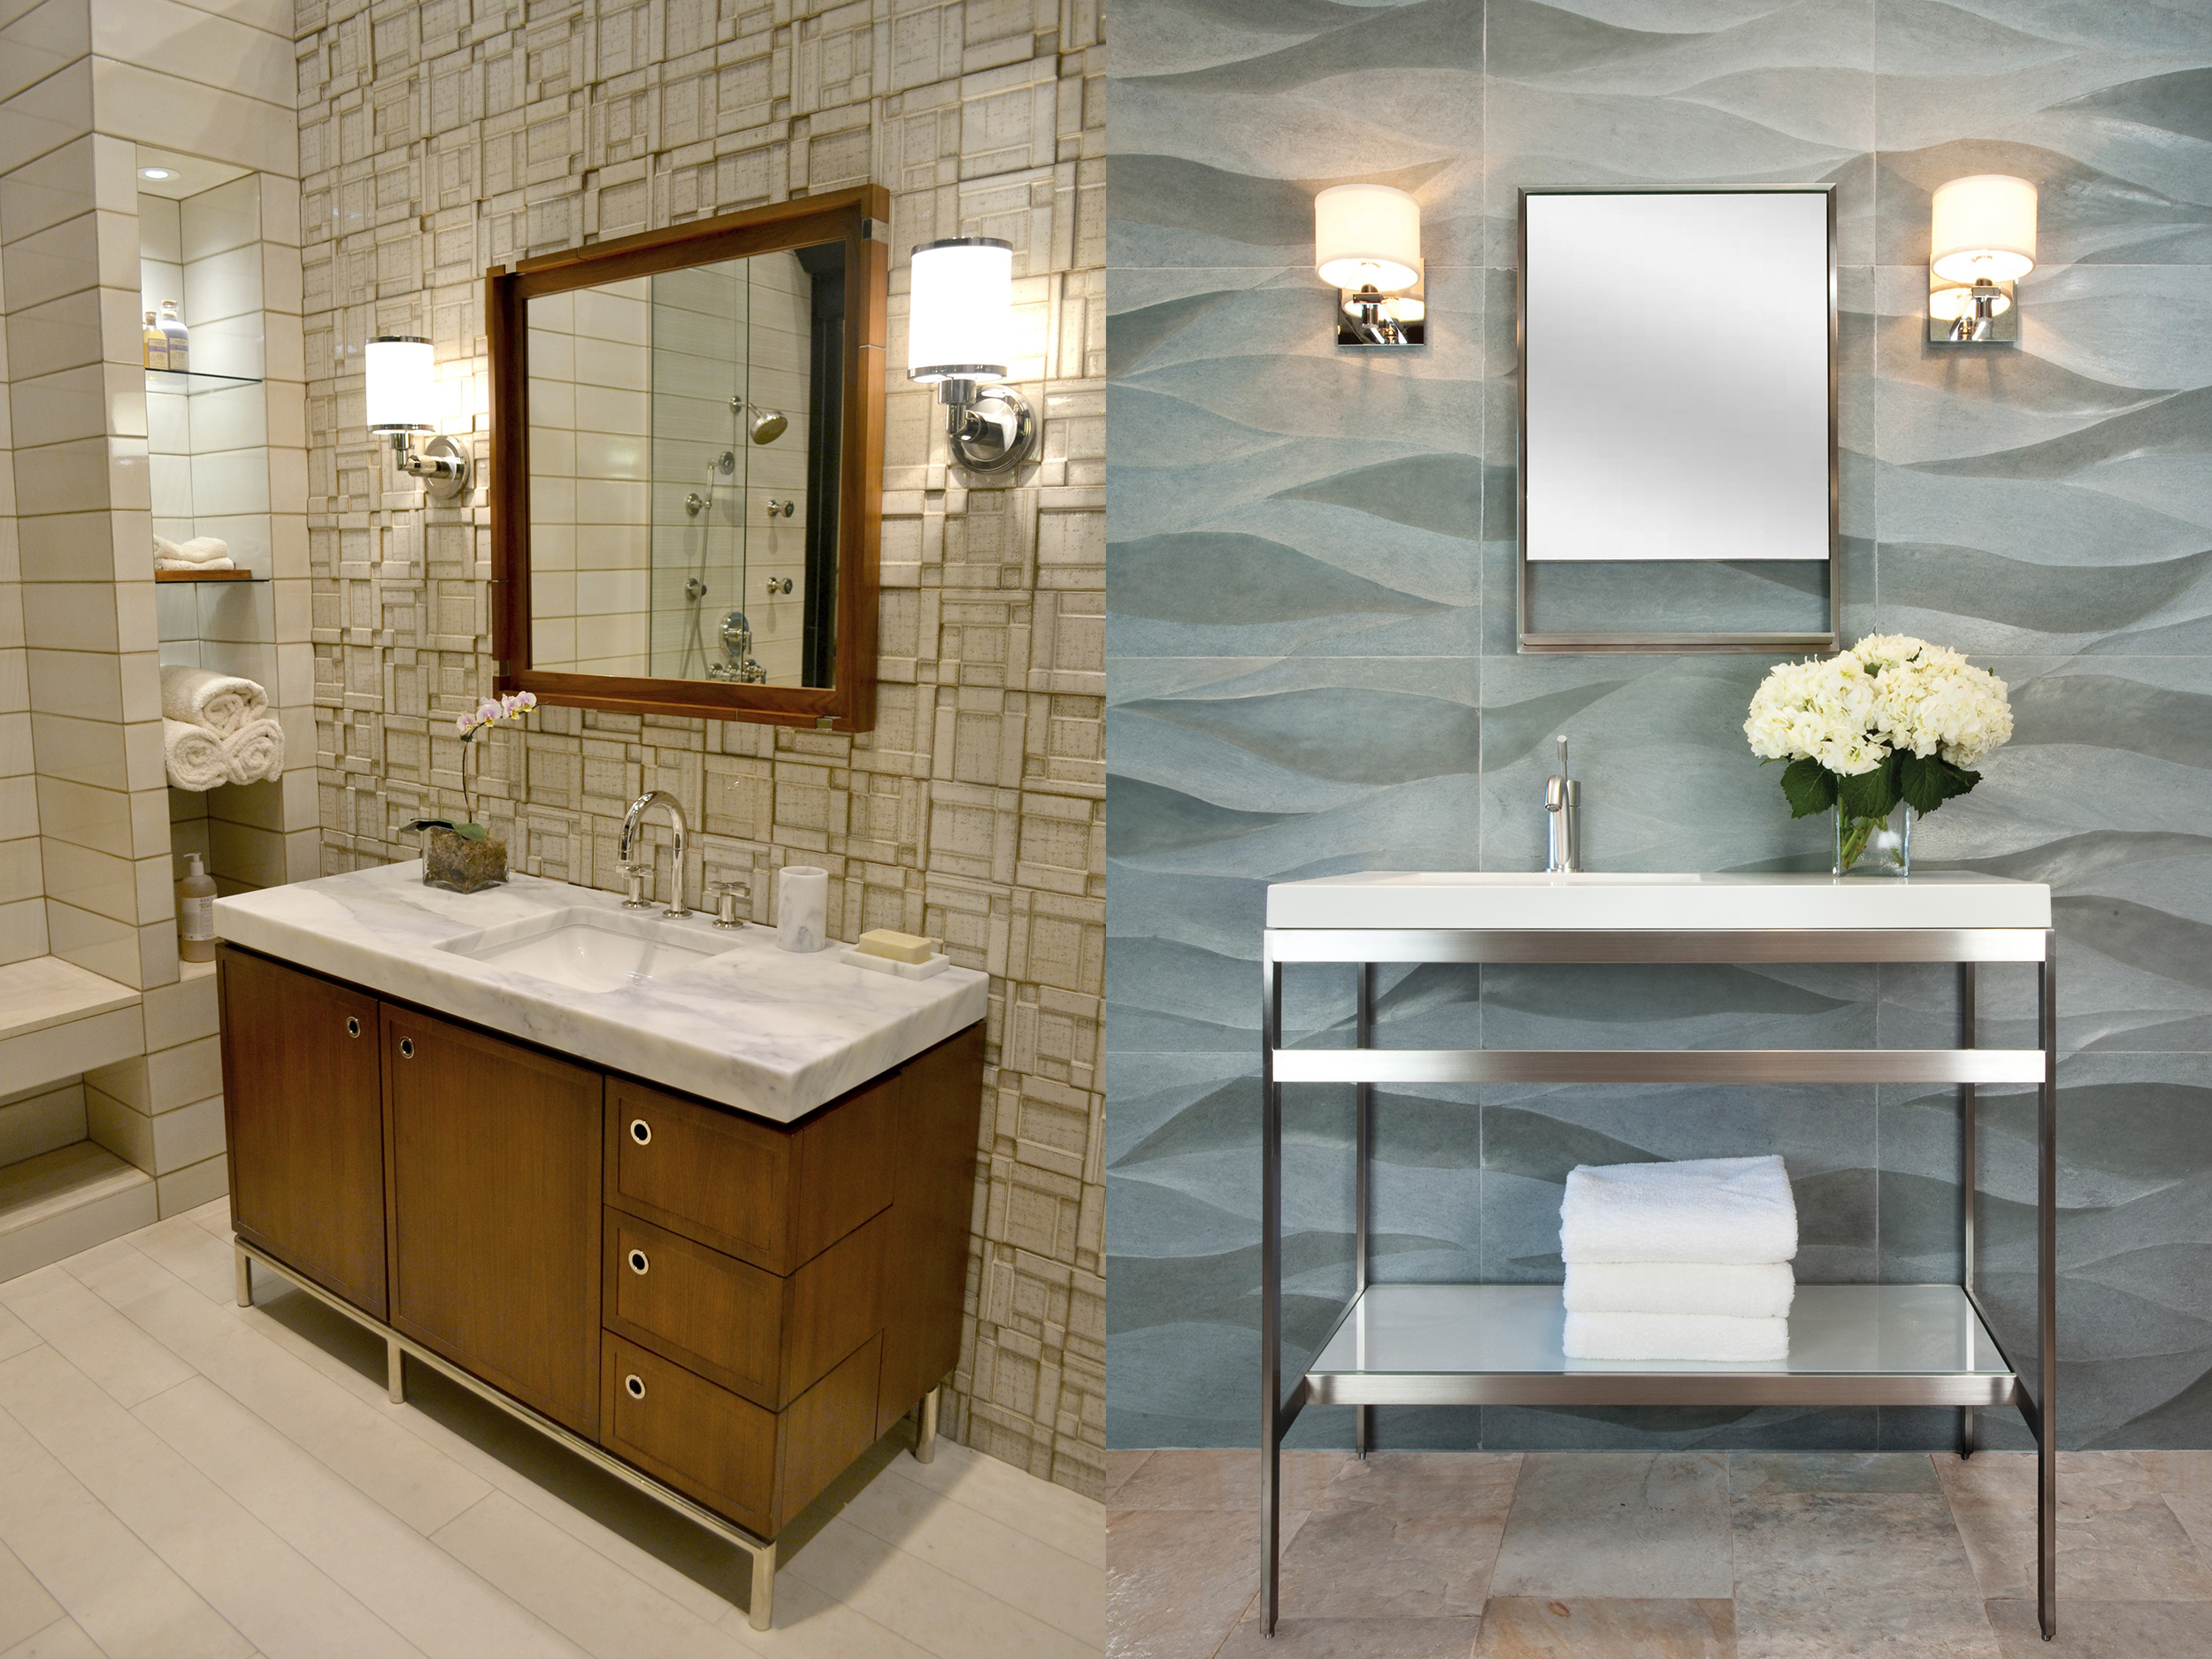 Bathroom trends for 2017 haskell 39 s blog for Tile trends 2017 bathroom